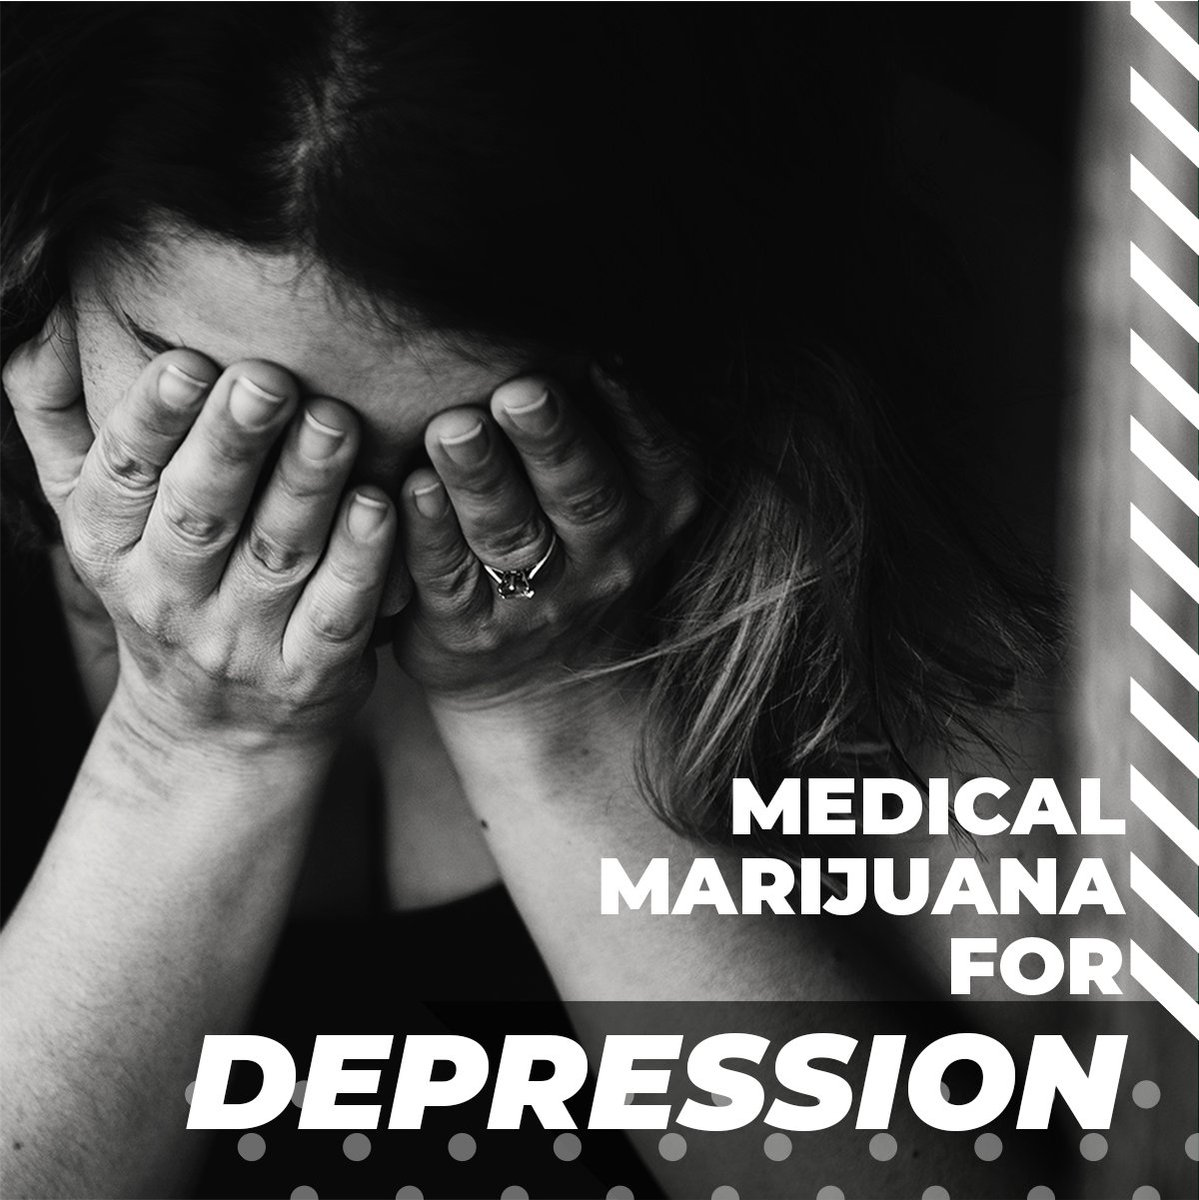 Cannabis is a faster-working alternative to antidepressants that stimulates the endocannabinoid system & speeds up the growth & development of nervous tissue with little to no troublesome side effects.  #NoMorePills #YesWeCANnabis #CannabisCommunity #CannabisCures  #FreeTheWeed https://t.co/YCRyUrRDpo